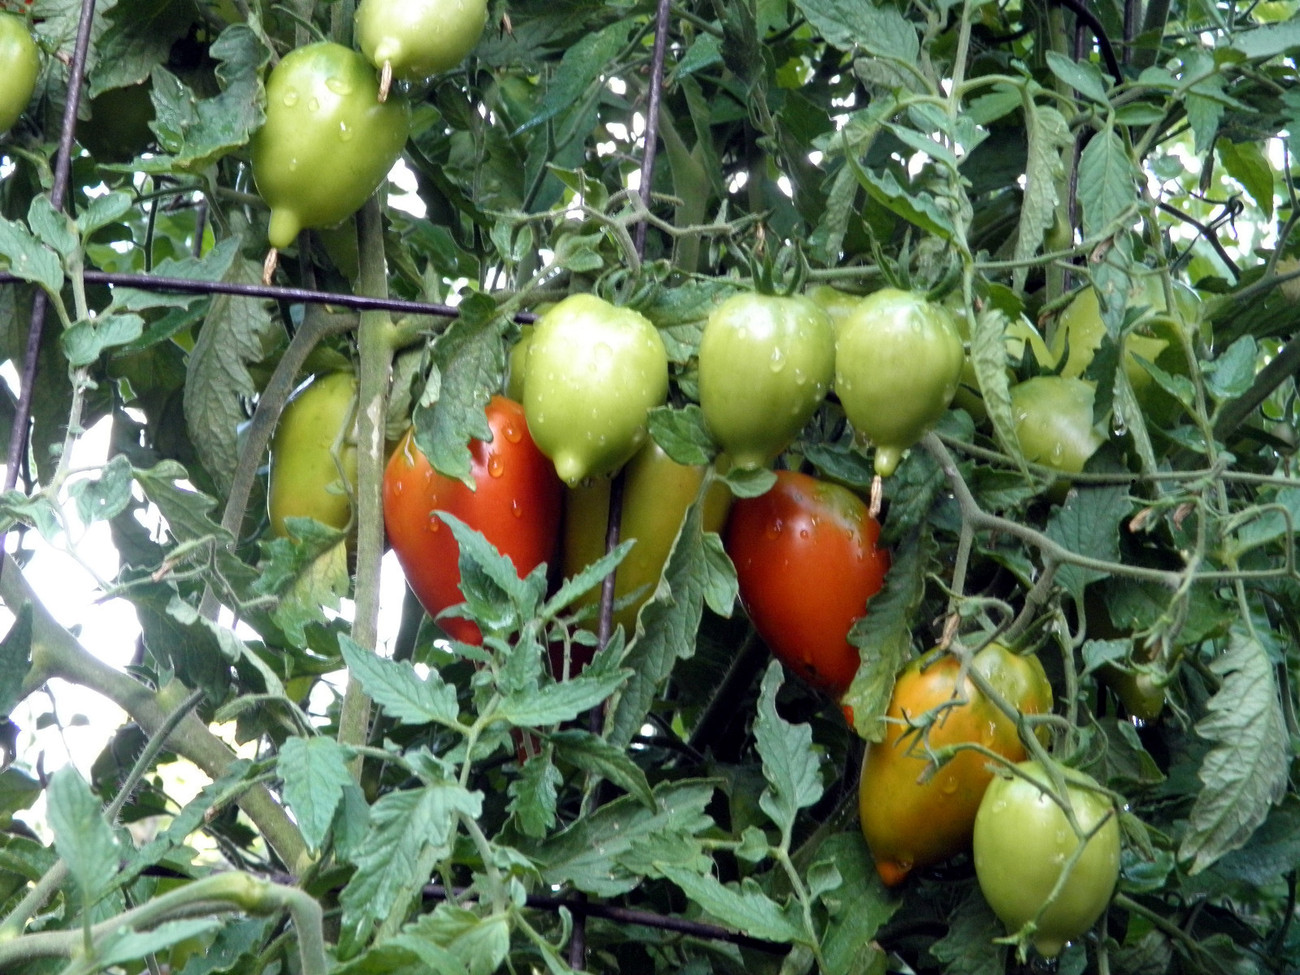 Legenda Tarasenko tomato - unusual torpedo-shaped fruit with magnificient flavor